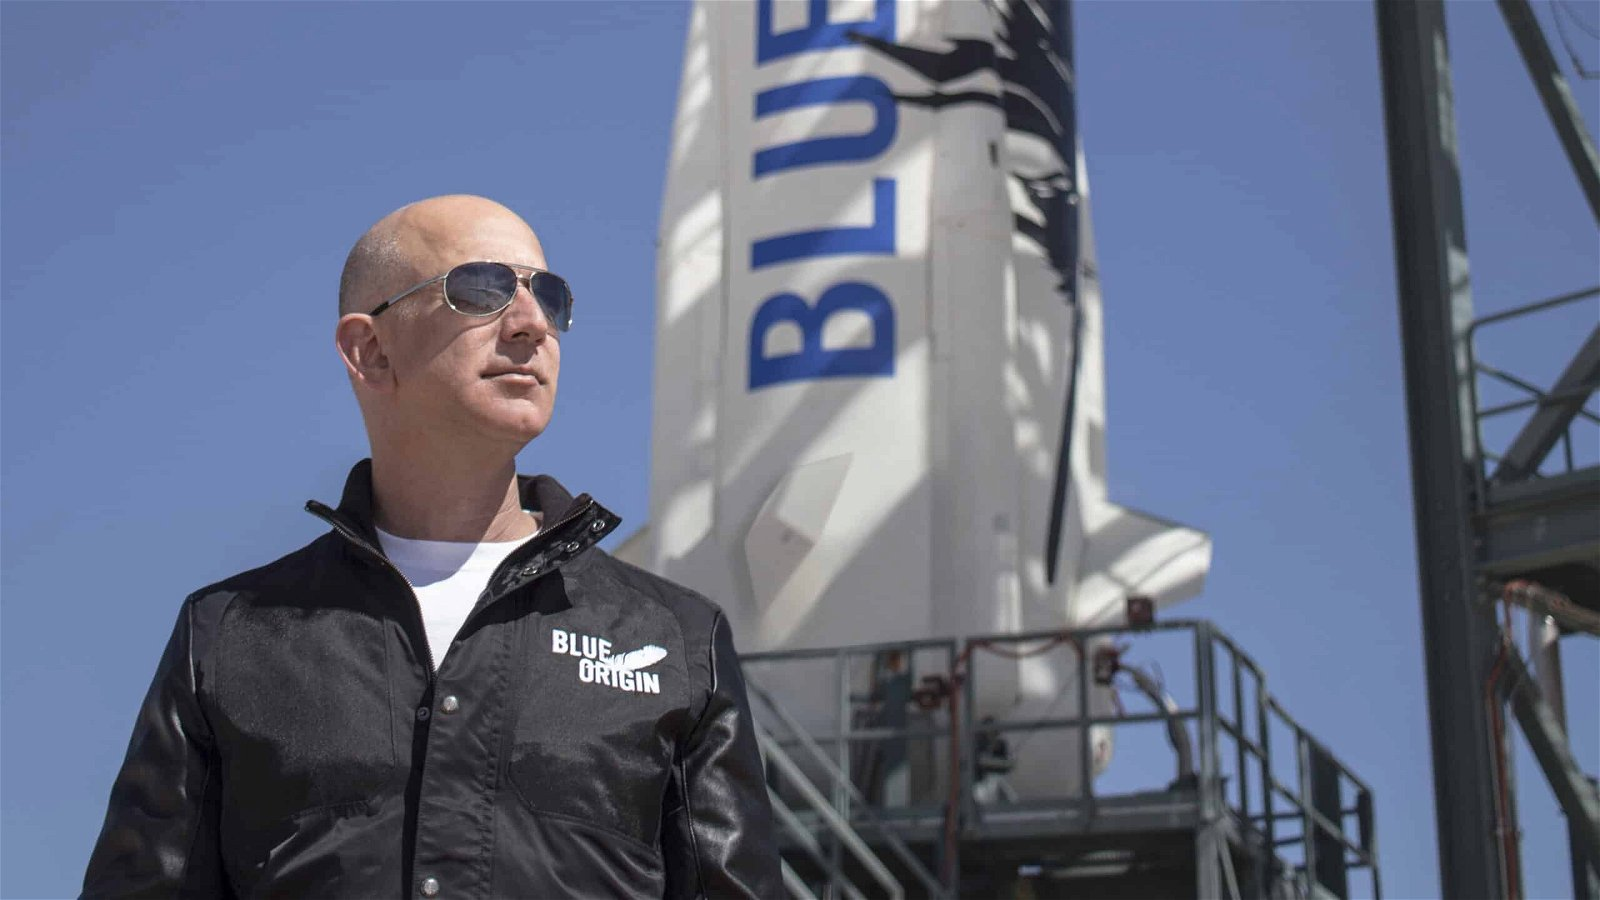 Blue Origin, Jeff Bezos, New Shepard, Virgin Galactic, SpaceX Falcon X, New Glenn, Amazon